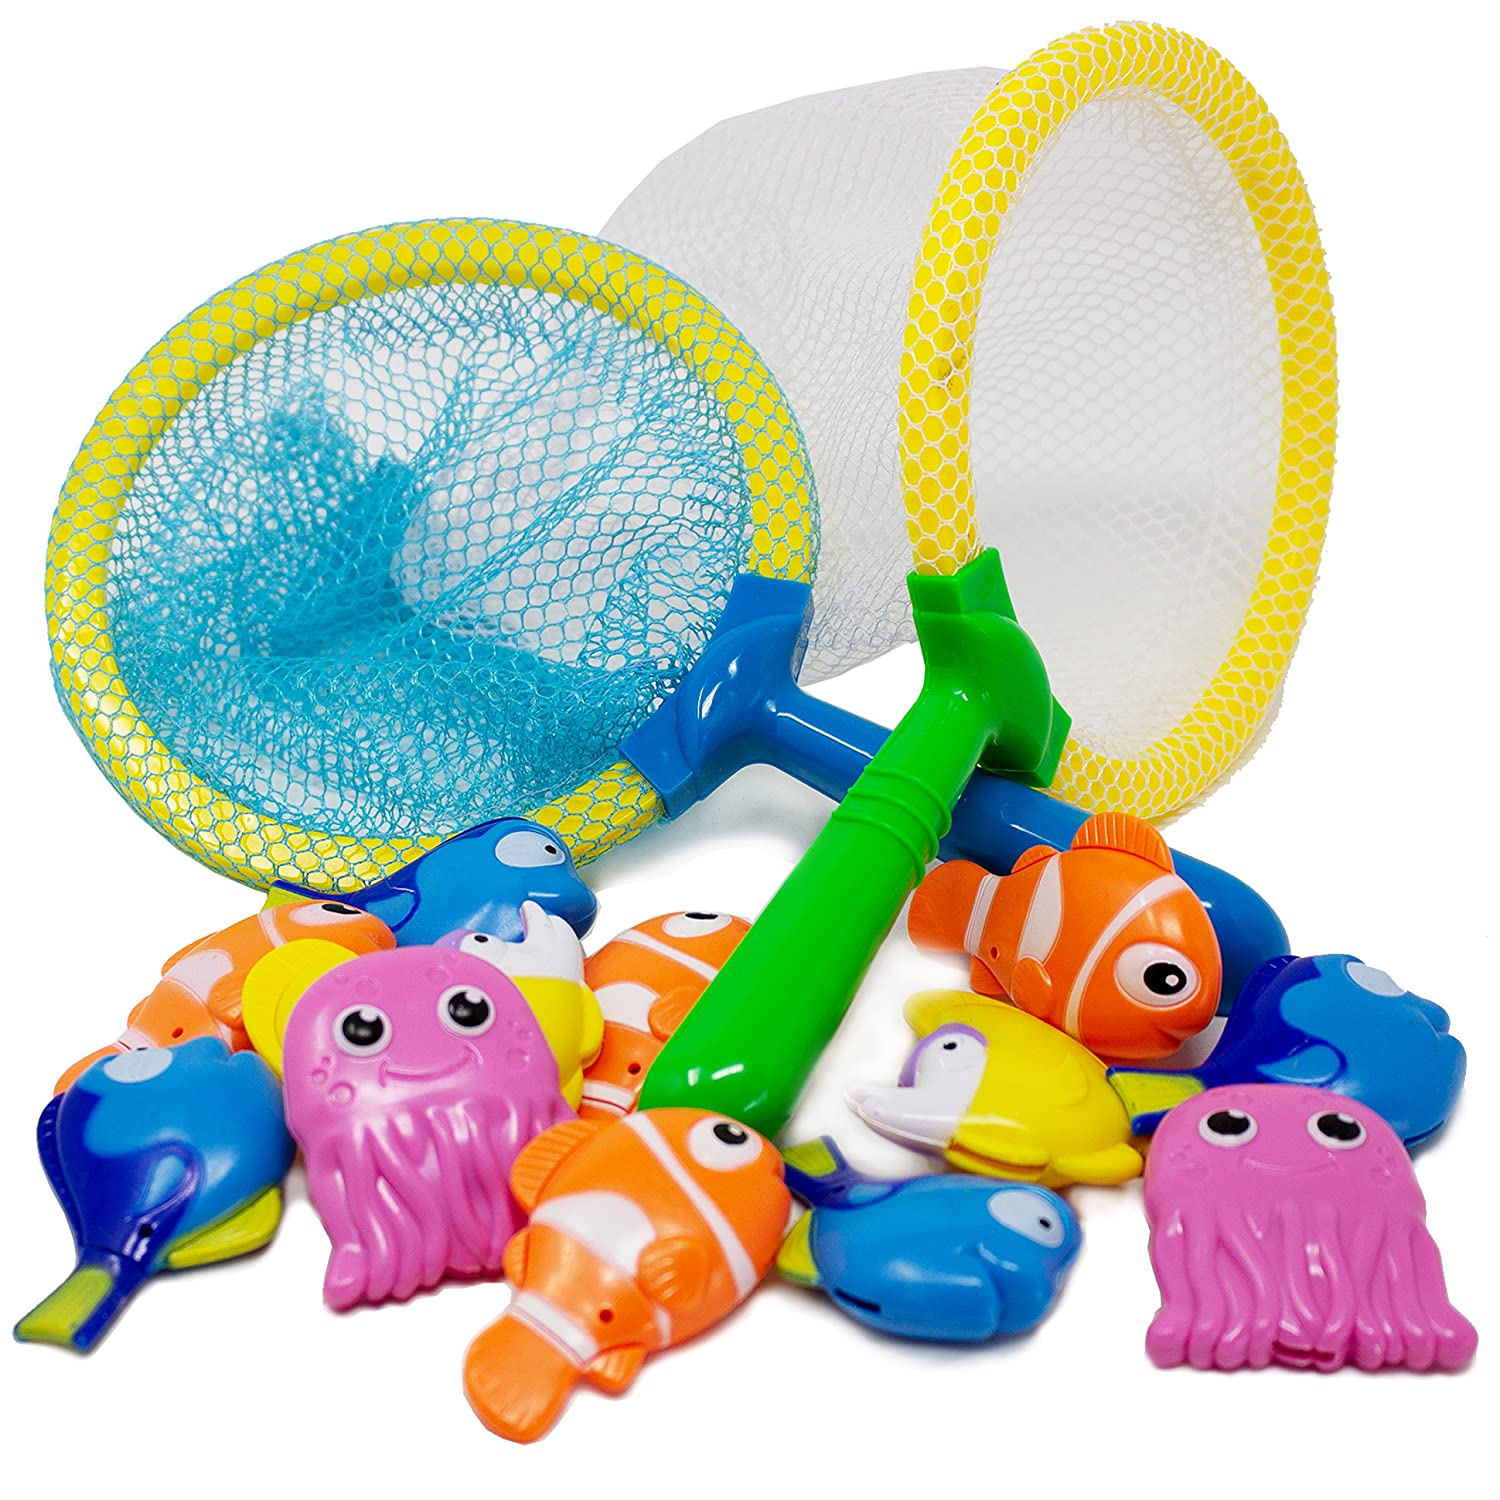 Boley 14 Piece Sinking Dive and Grab Set - Sinking Fish and Net Toy Playset for Kids, Children, Toddlers - Perfect for Bath Time and Summer Fun!